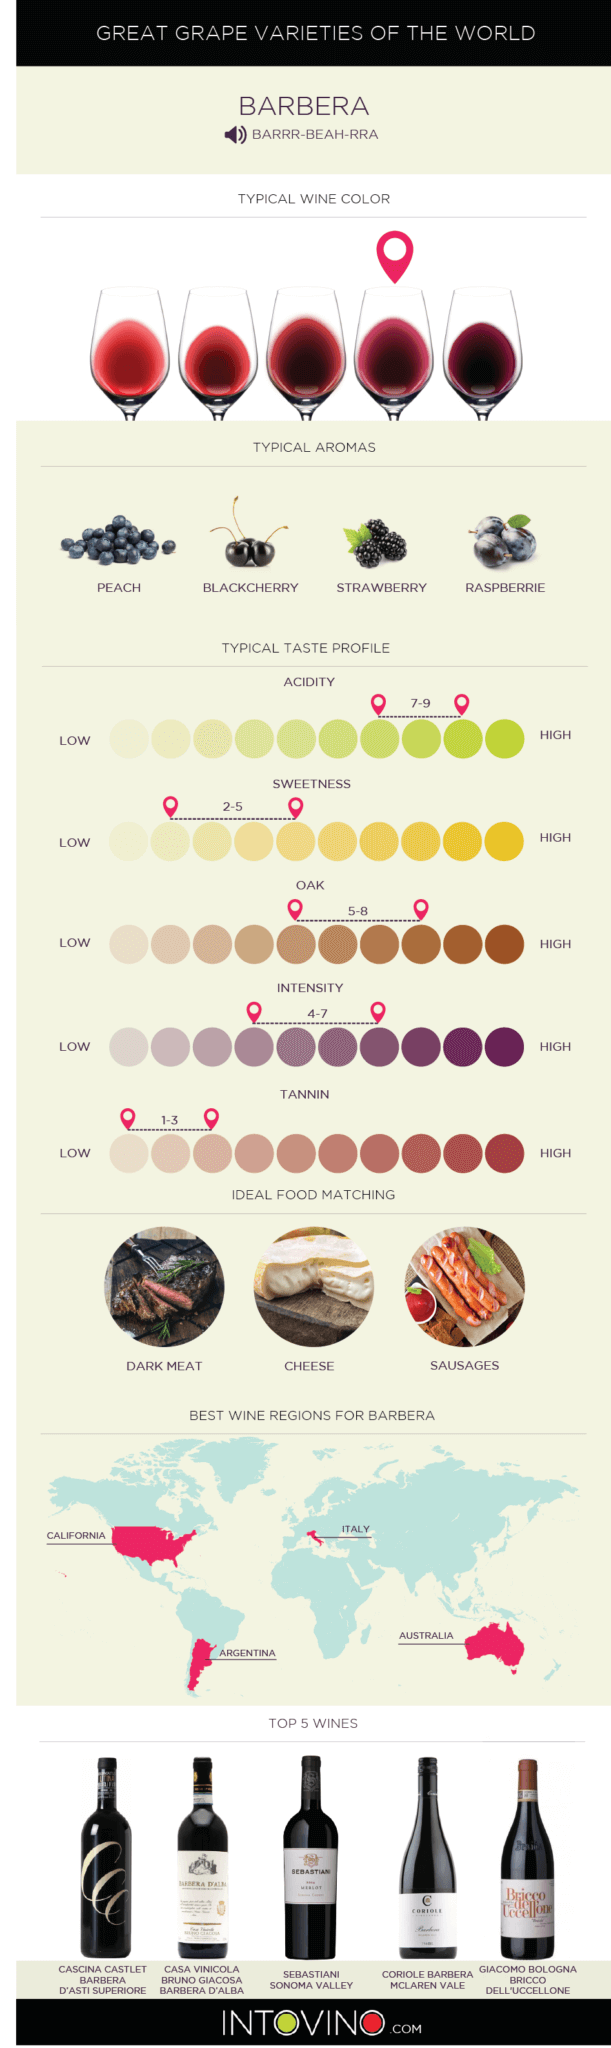 Barbera infographic guide